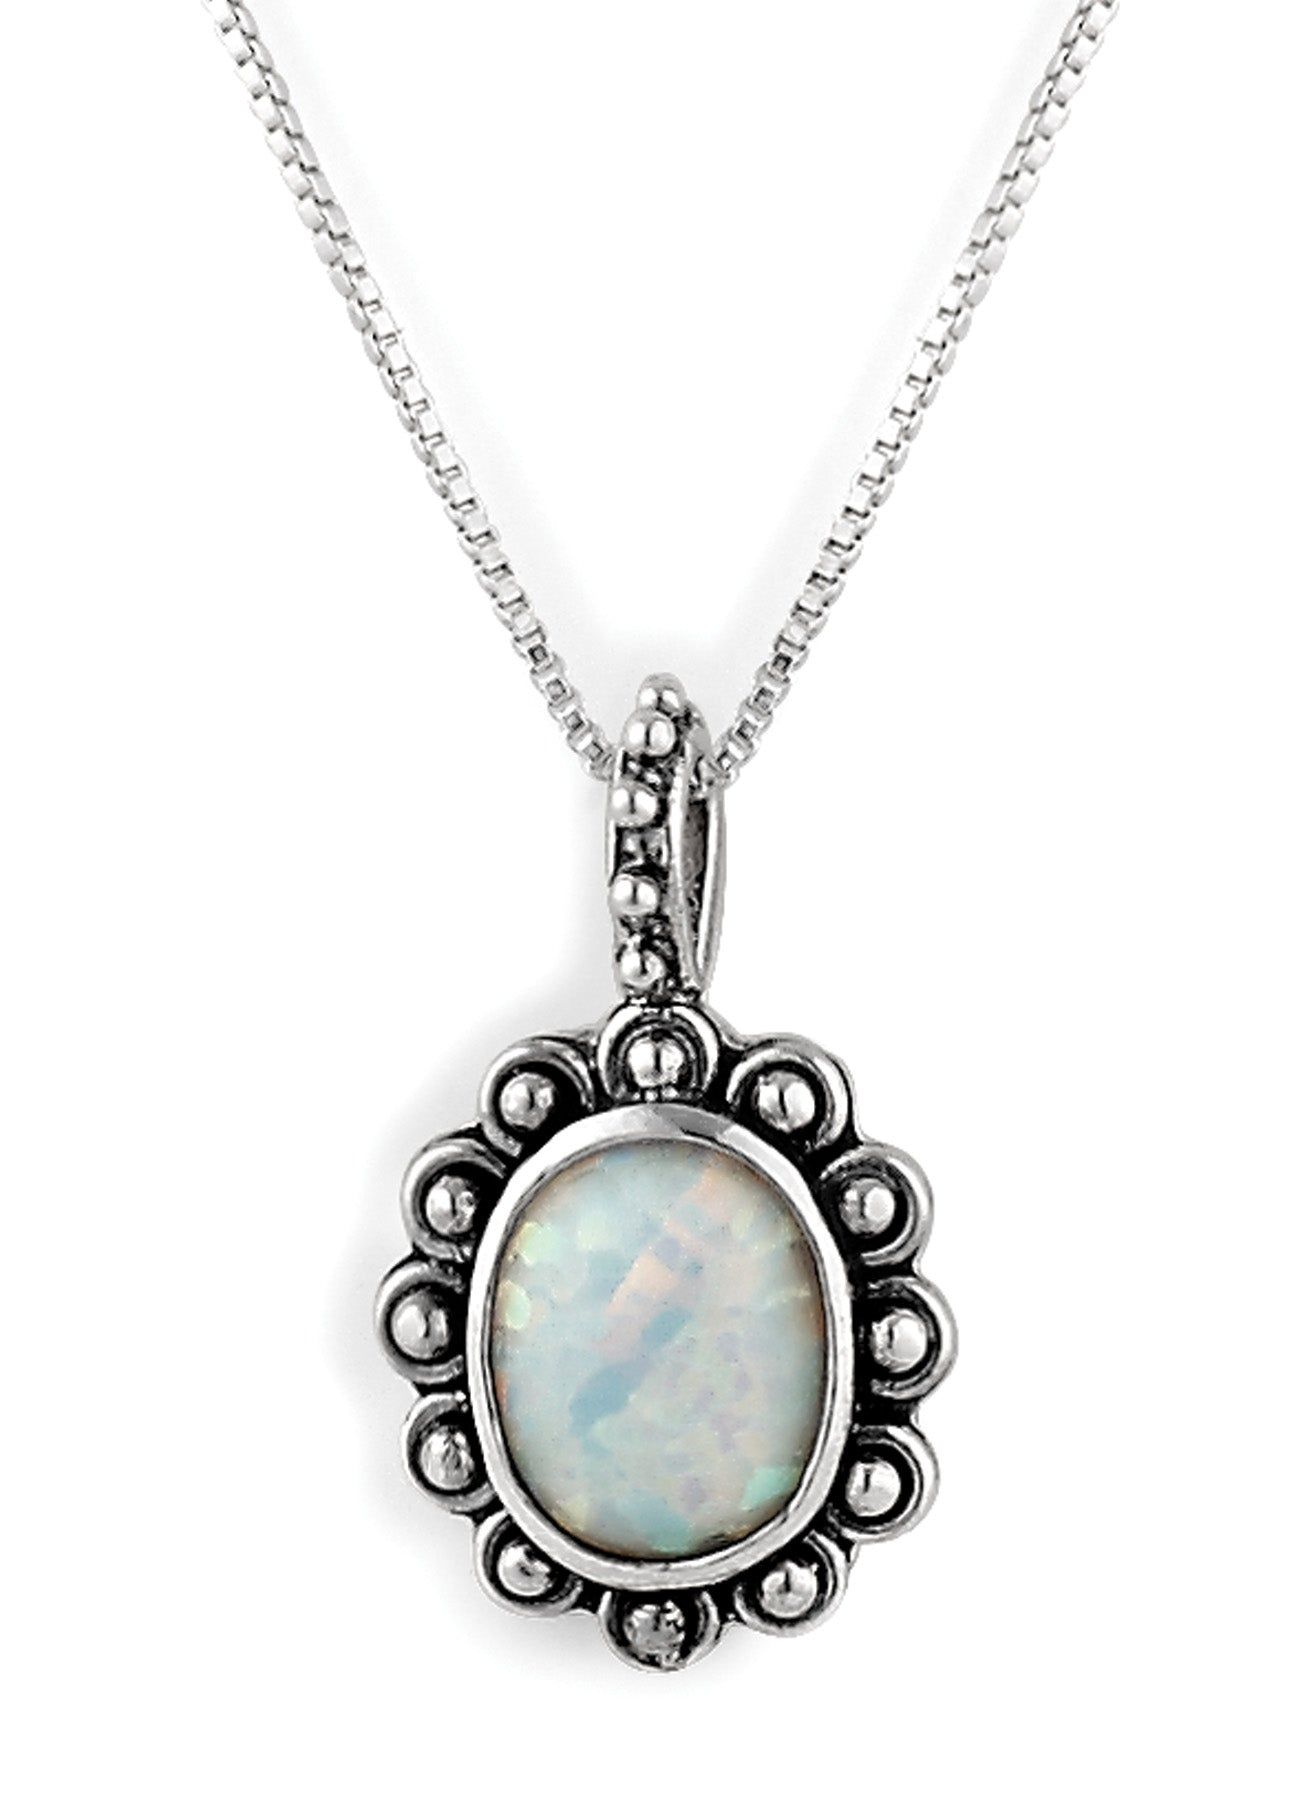 """October """"Trick or Sweet"""" Birthstone Necklace from Bonn Bons Birthstone Necklaces by Lori Bonn (512910OPW)"""